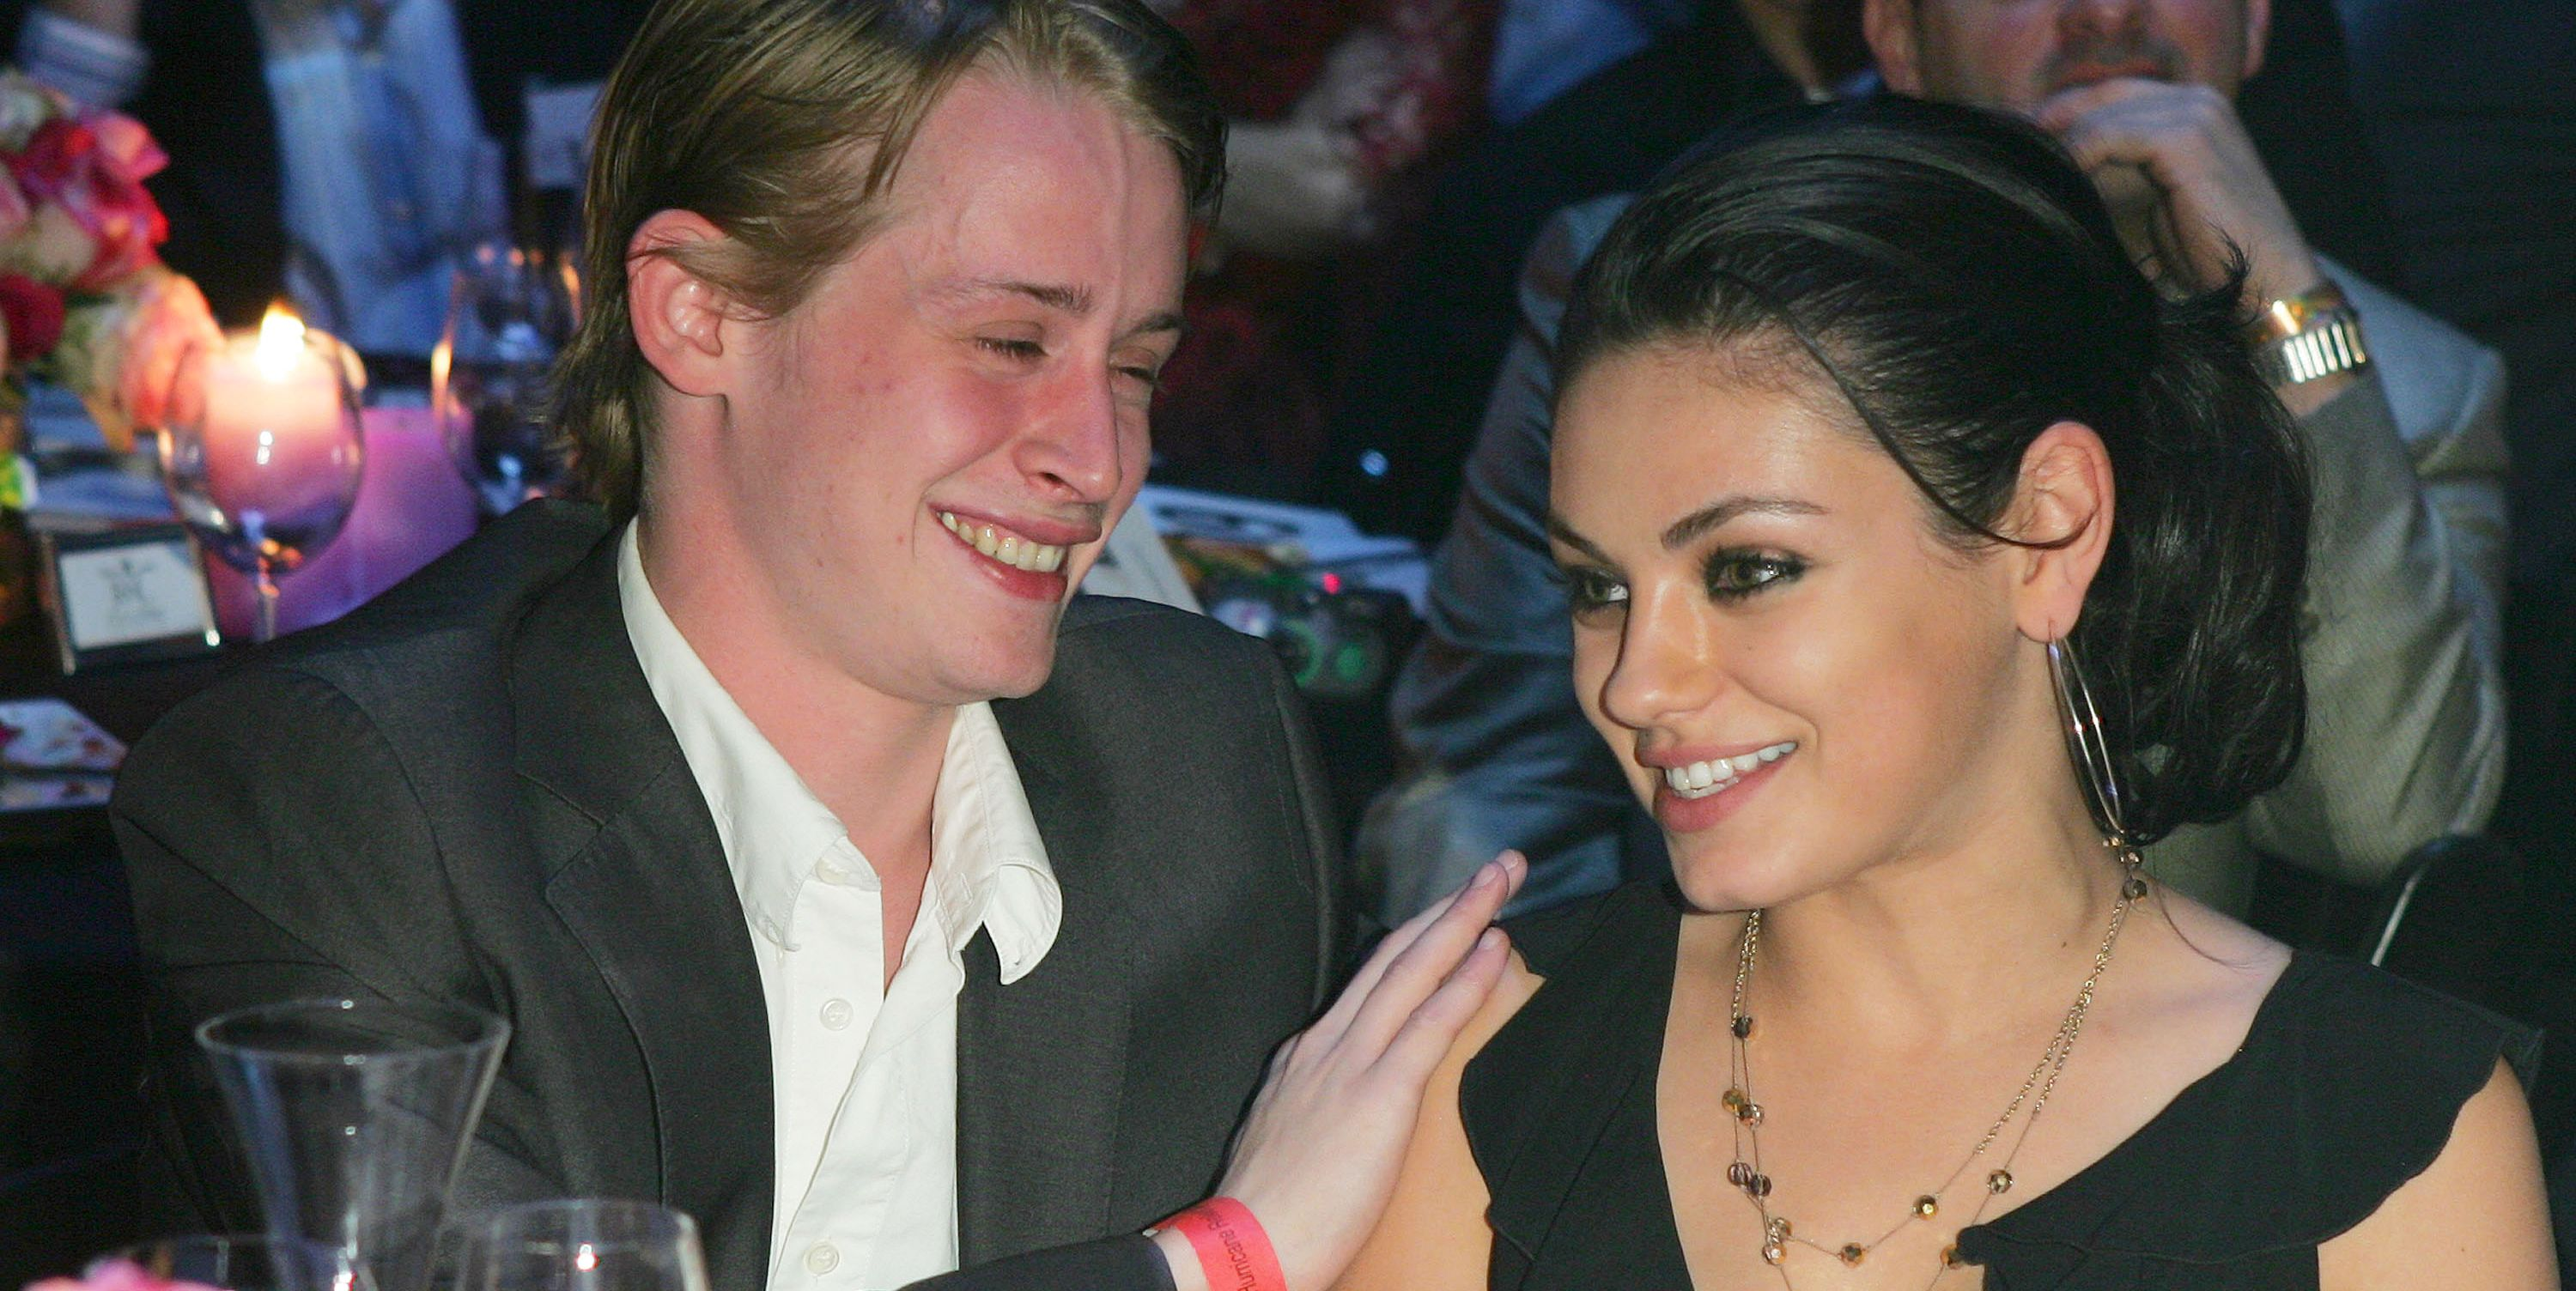 mila kunis quotfcked upquot during relationship with macaulay